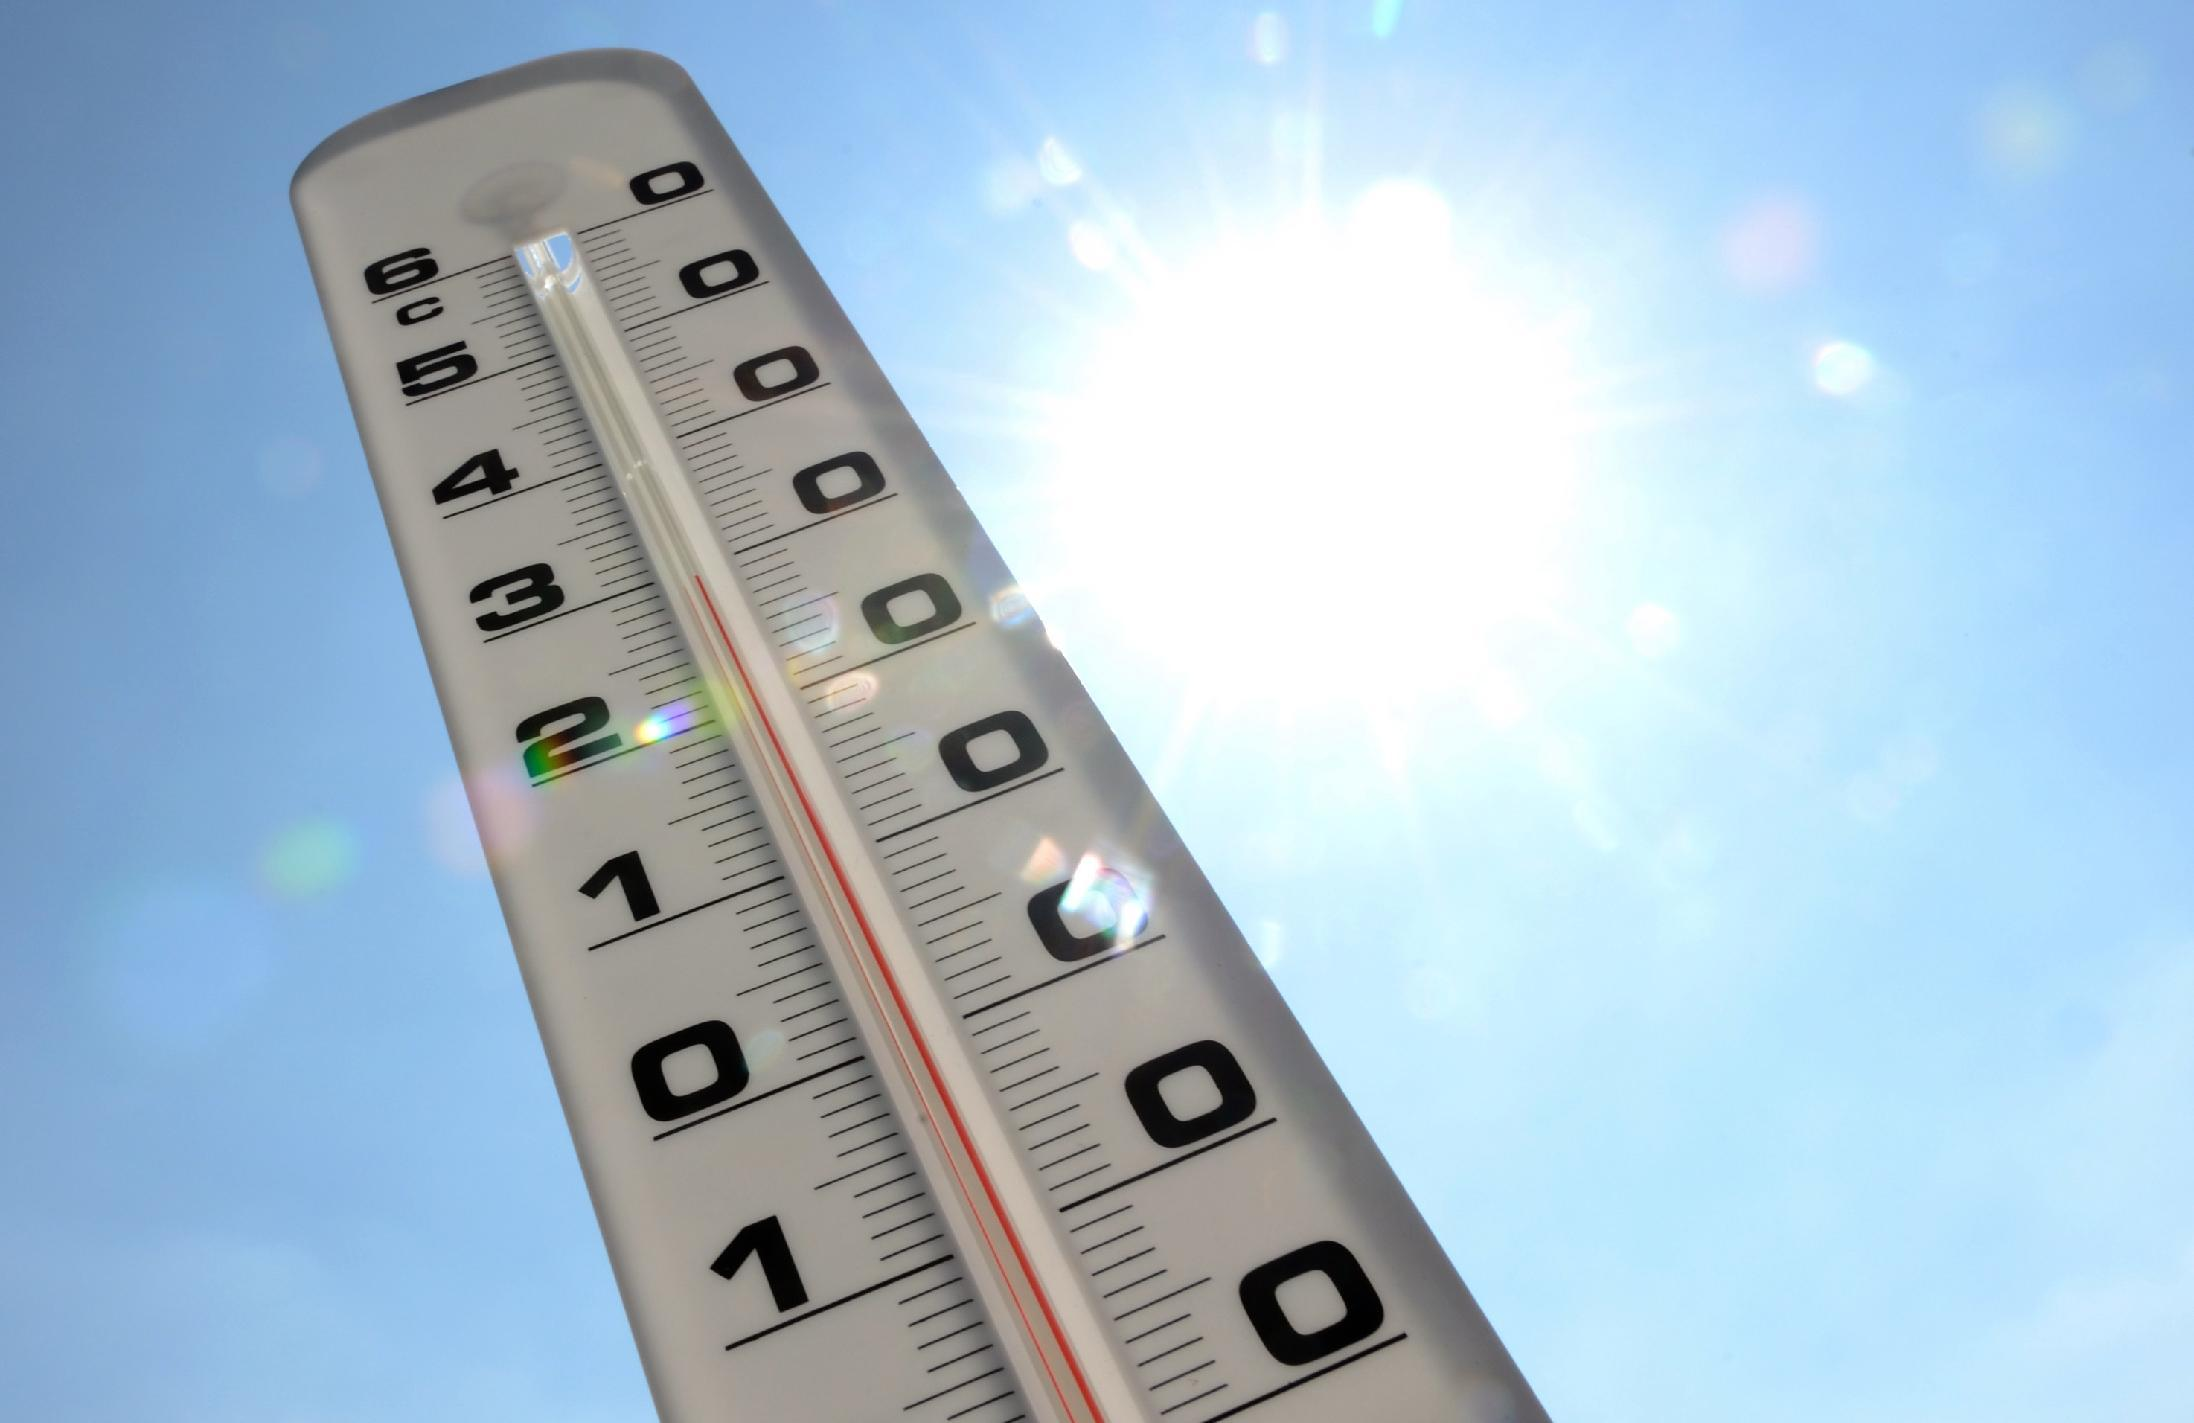 A thermometer shows the temperature rising on July 19, 2013 in Lille, northern France (AFP Photo/Denis Charlet)